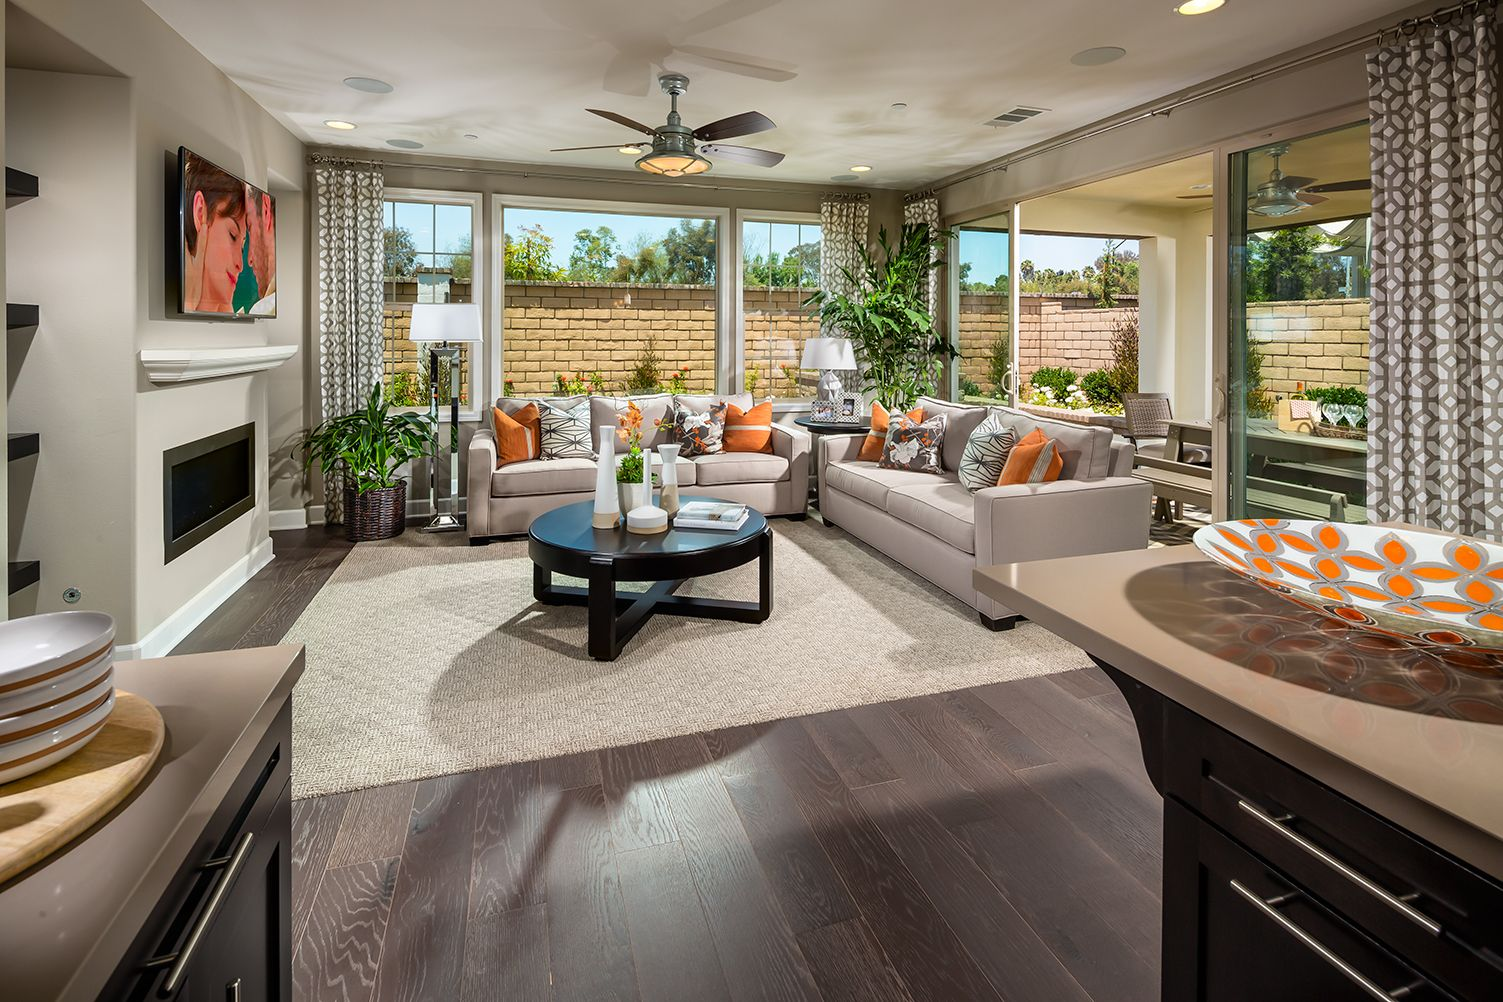 Indoor Outdoor Living In Style At Casabella Luxury New